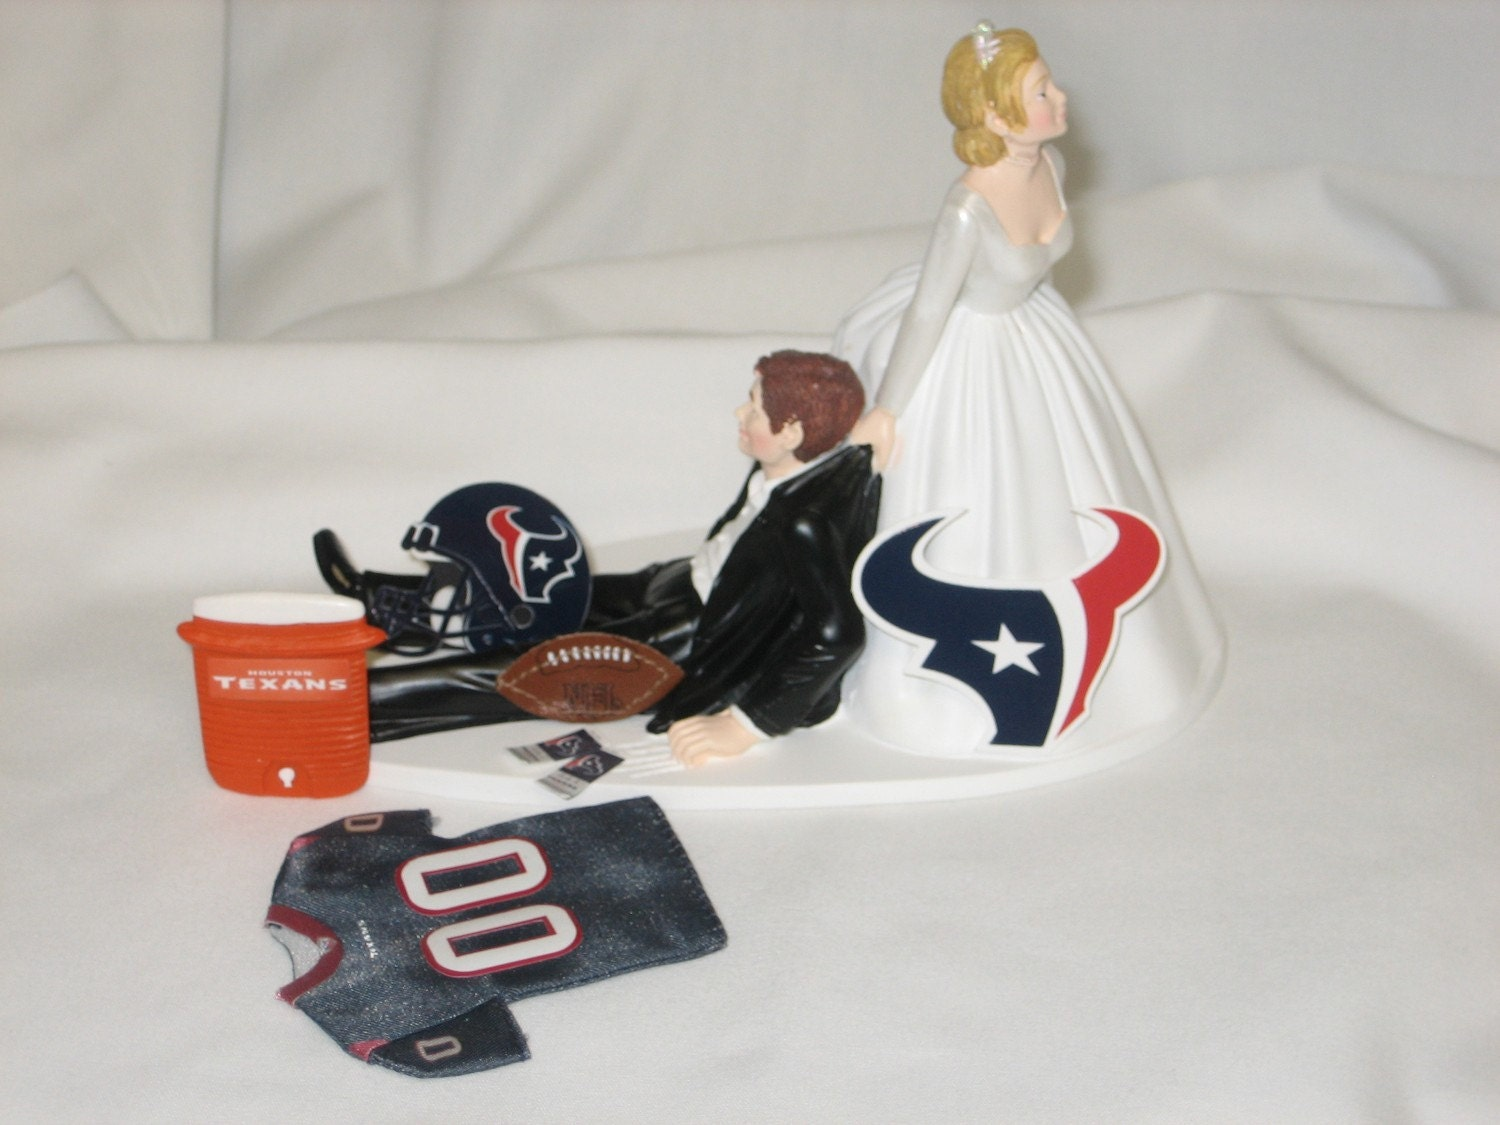 wedding cake toppers in houston tx houston texans wedding cake topper groom by finsnhorns 26508